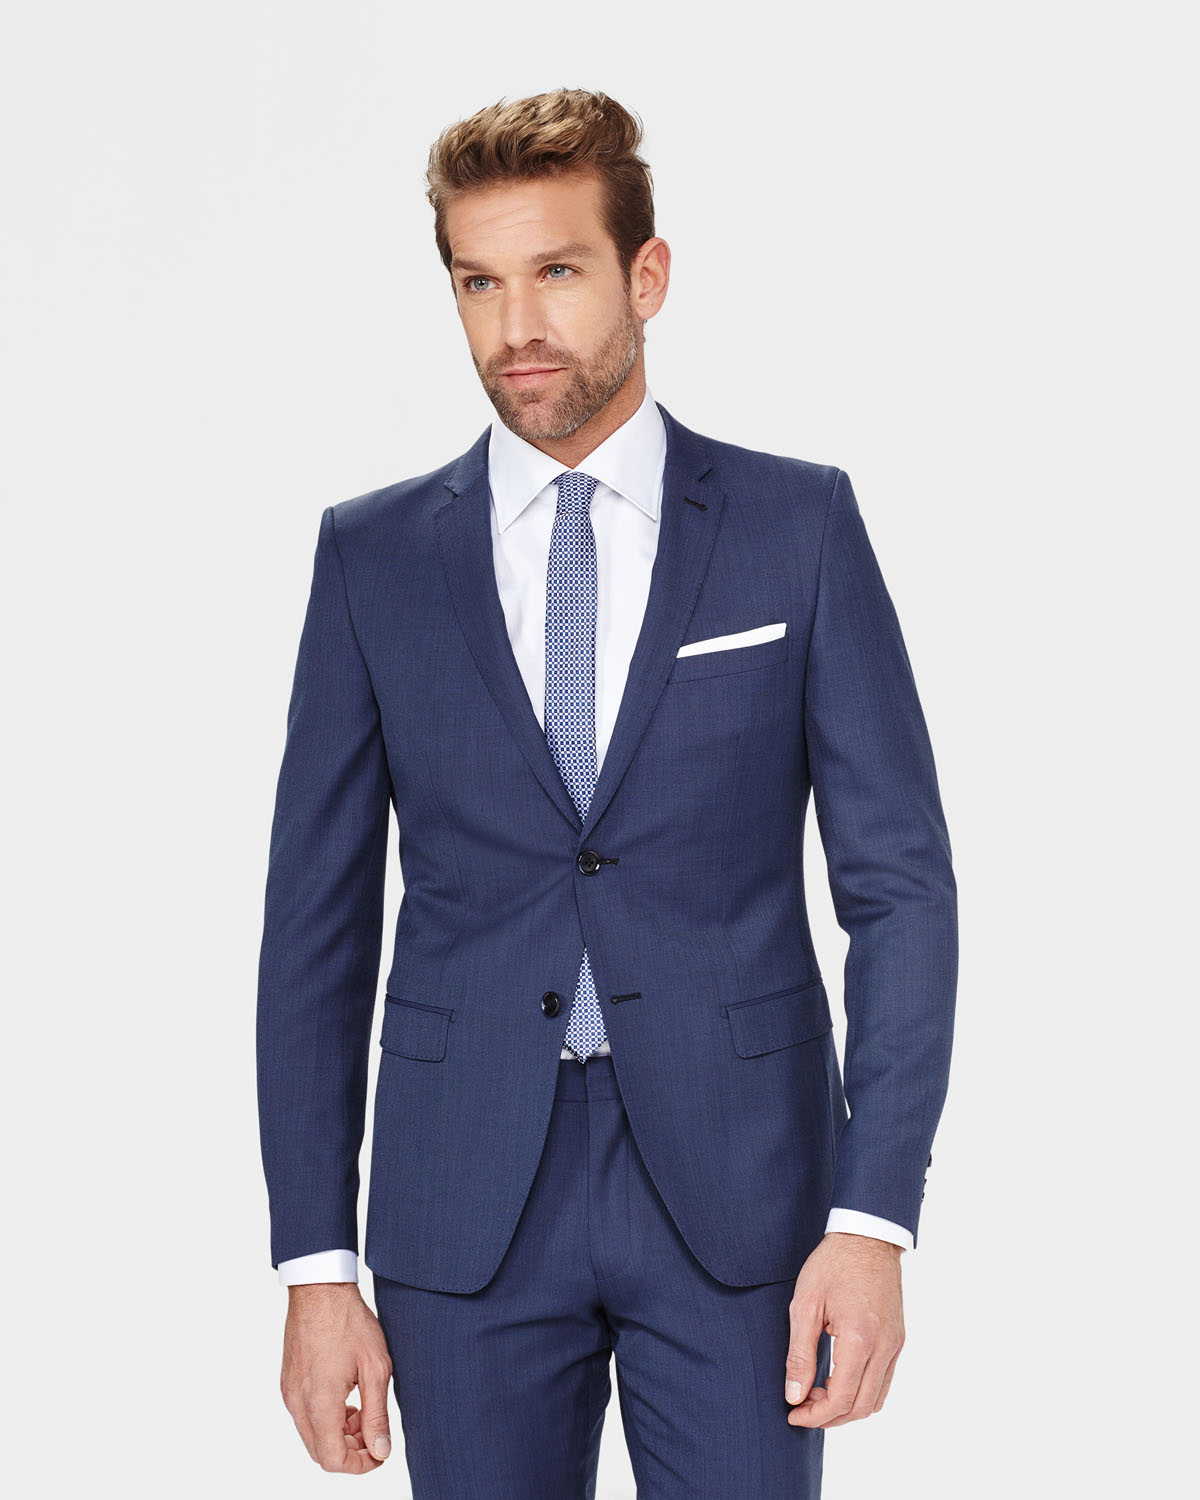 Find slim fit clothing for men in today's top styles from Banana Republic. For Men Who Want a Sleek, Comfortable Fit. Shop Banana Republic to find a wide range of fashionable slim fit clothing for men, including casual shirts, fitted dress shirts, dress pants, modern slim fit suits and more.